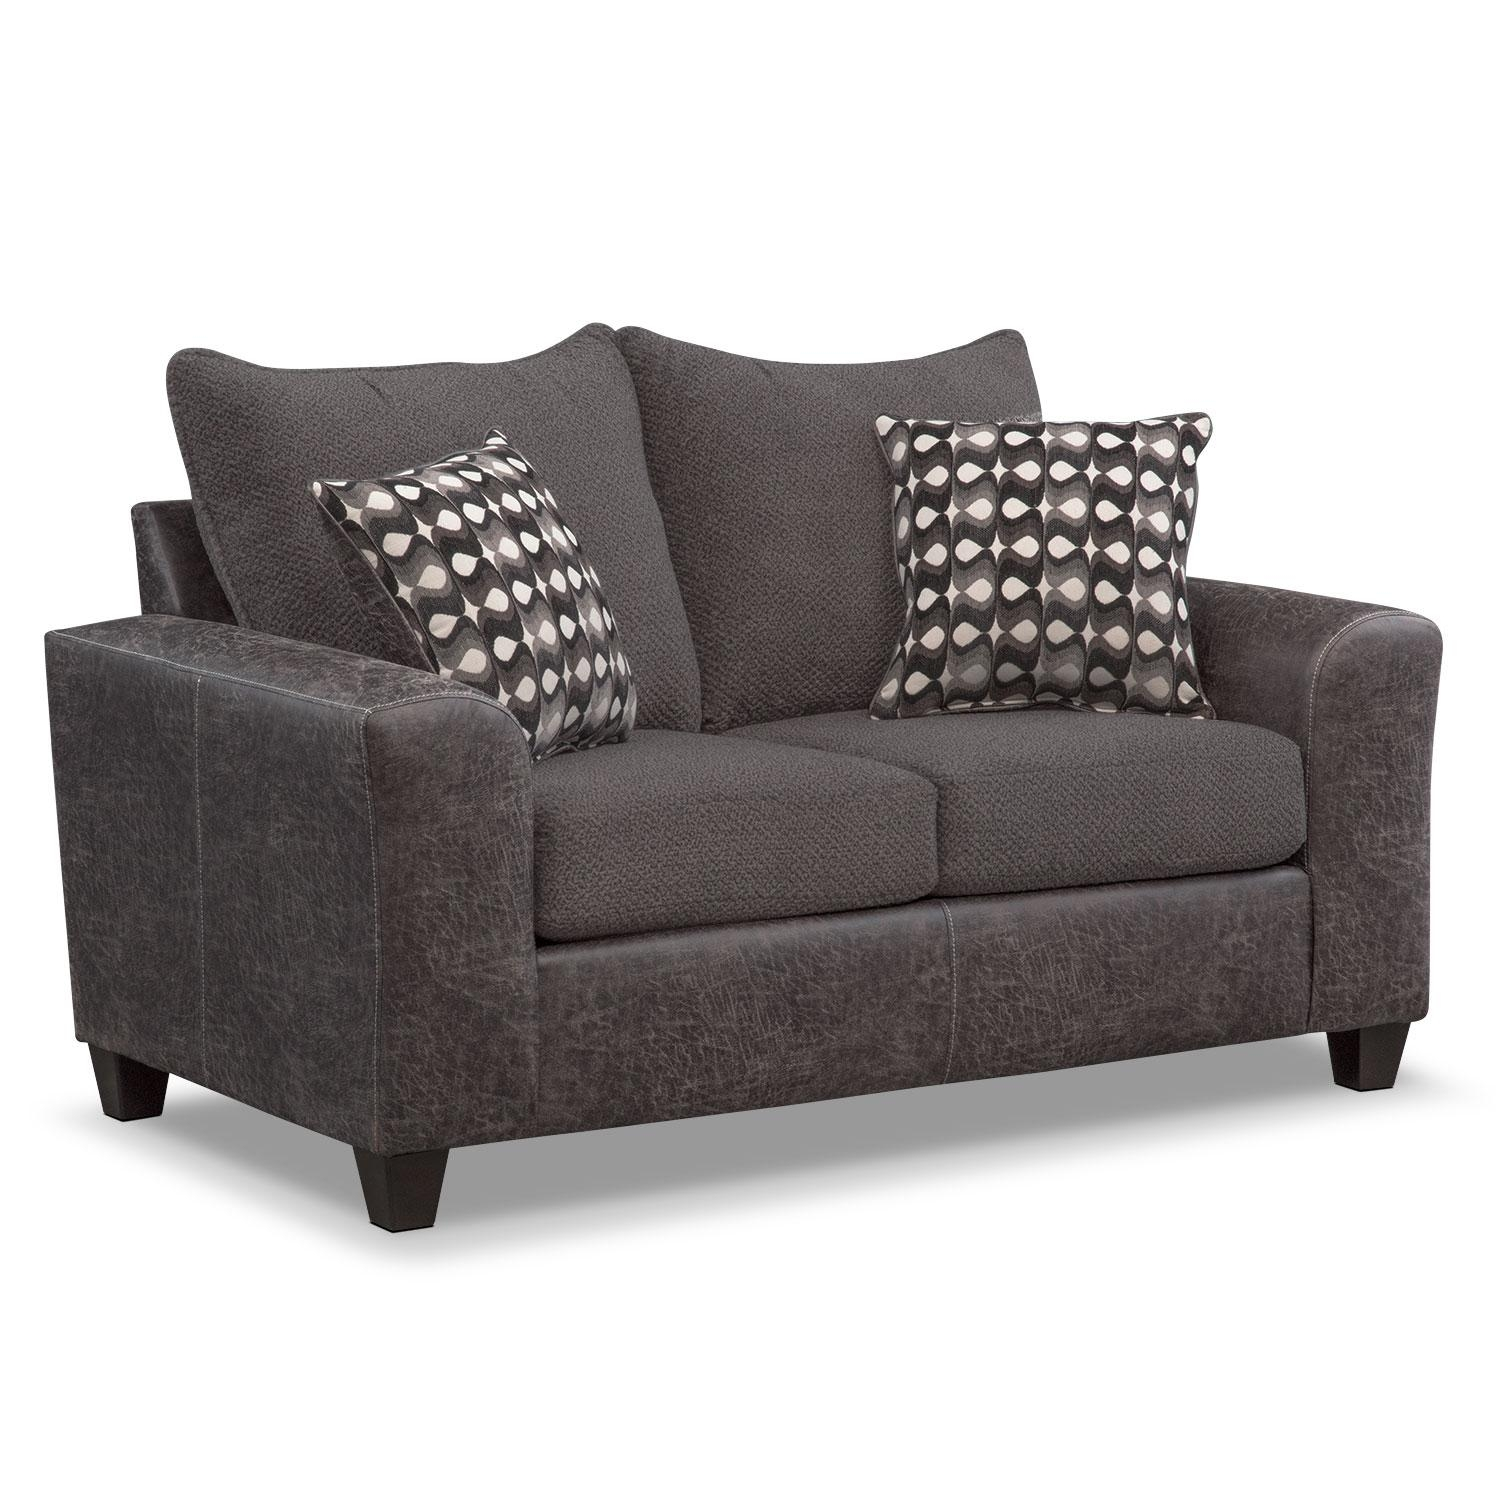 Brando Sofa, Loveseat And Swivel Chair Set – Smoke | American Throughout Spinning Sofa Chairs (View 15 of 20)